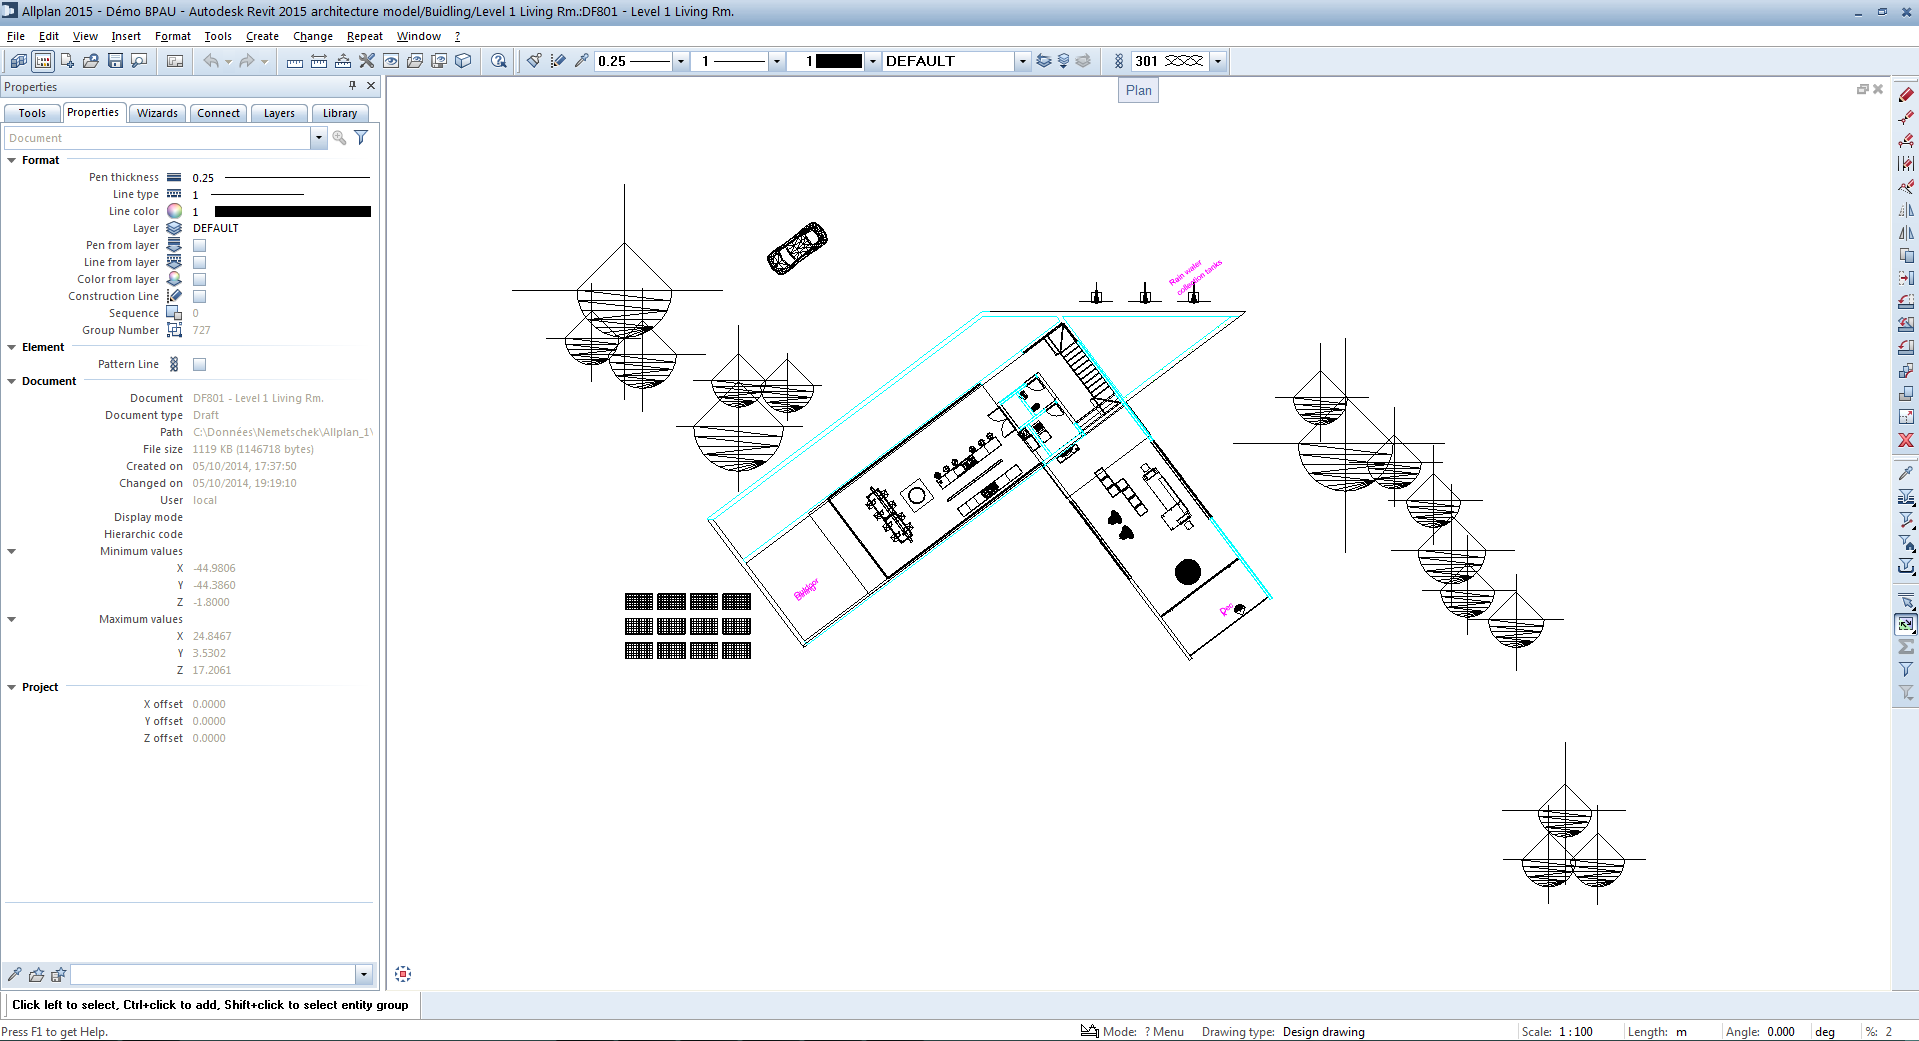 Autodesk_Revit_2015_Allplan_02_level_01